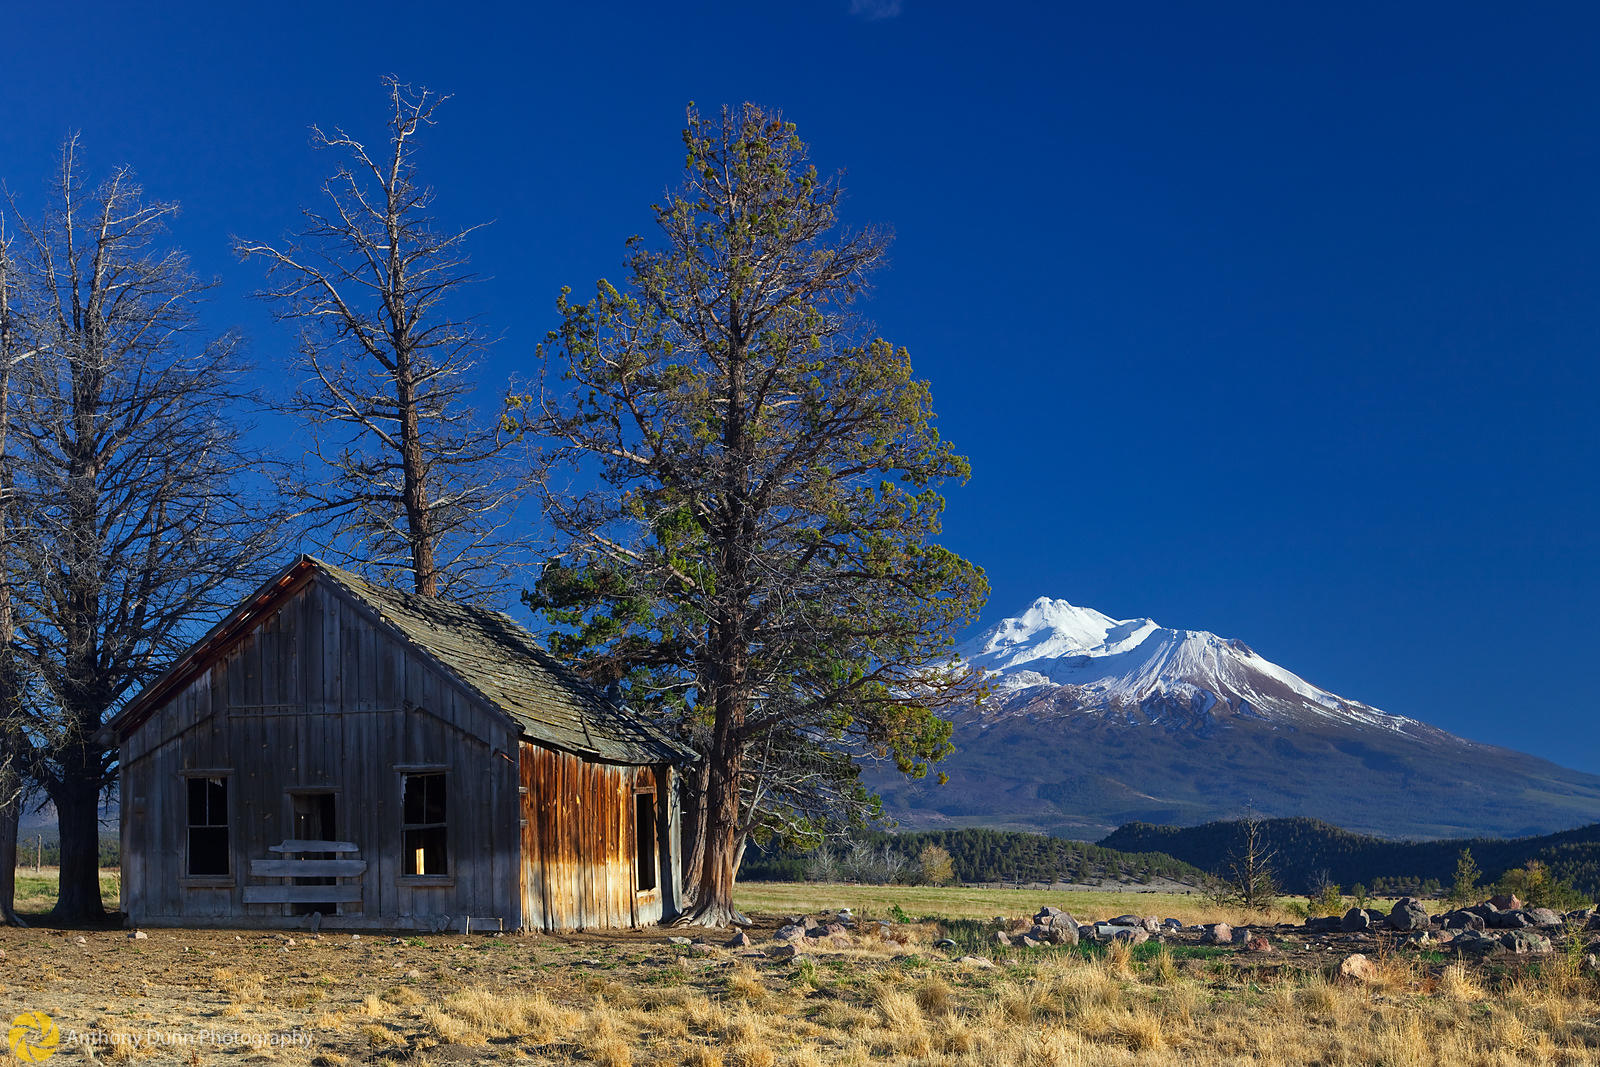 Shack Under Mt. Shasta